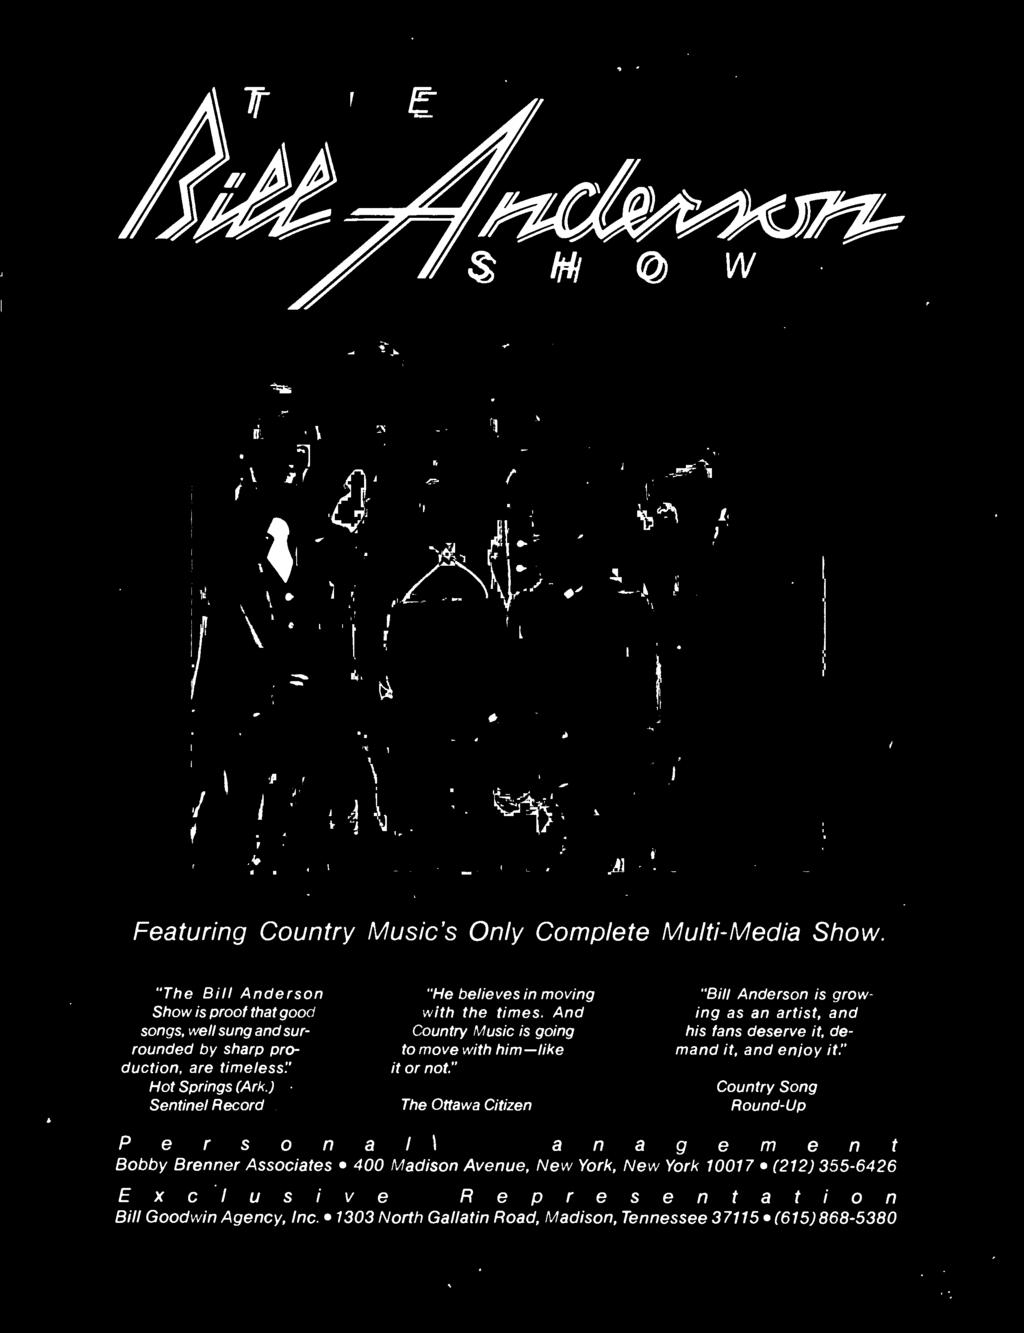 "1303 North Gallatin Road, Madison ""Bill Anderson is growing as an artist and his fans deserve it demand it, and"